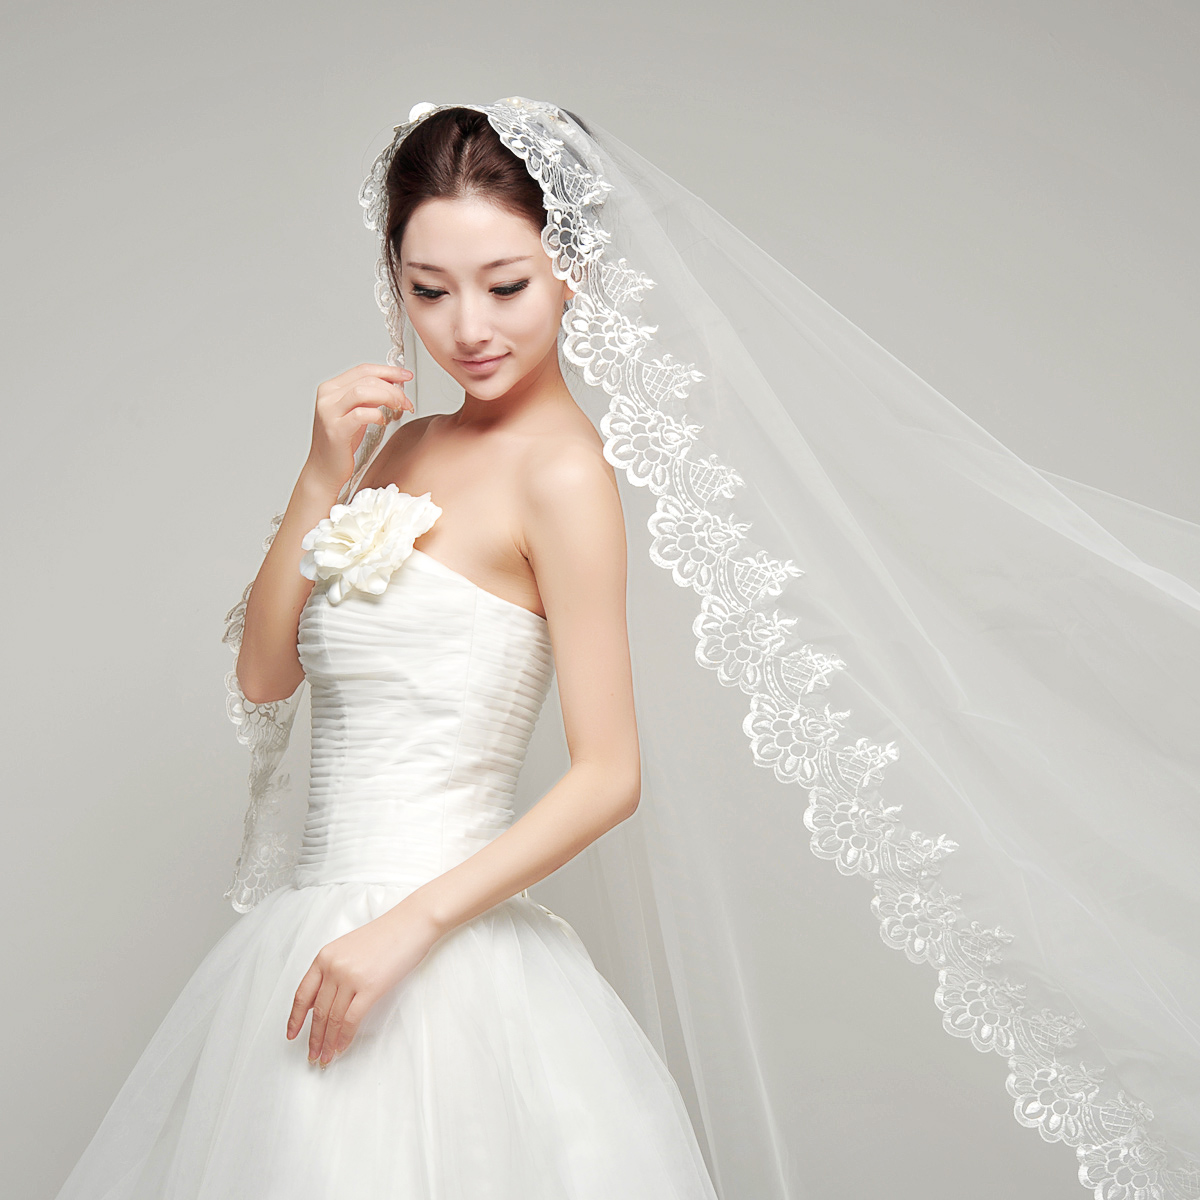 Why Korean Men Want To Marry Foreign Women?